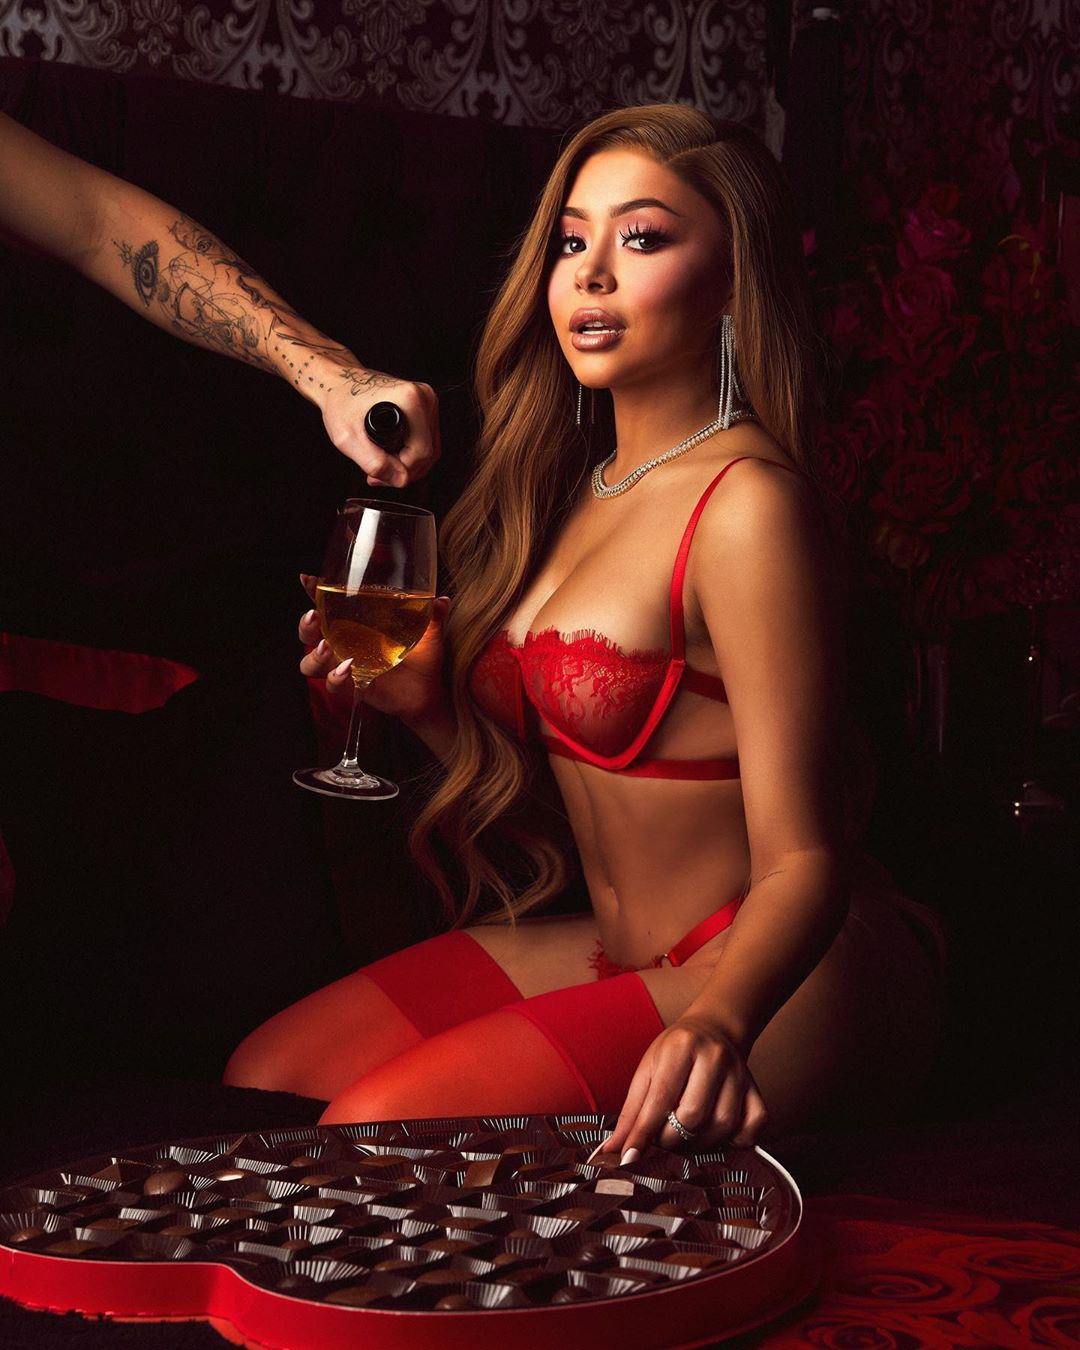 Daisy Marquez hot pics in lingerie matching outfit, photoshoot poses, photography for girl